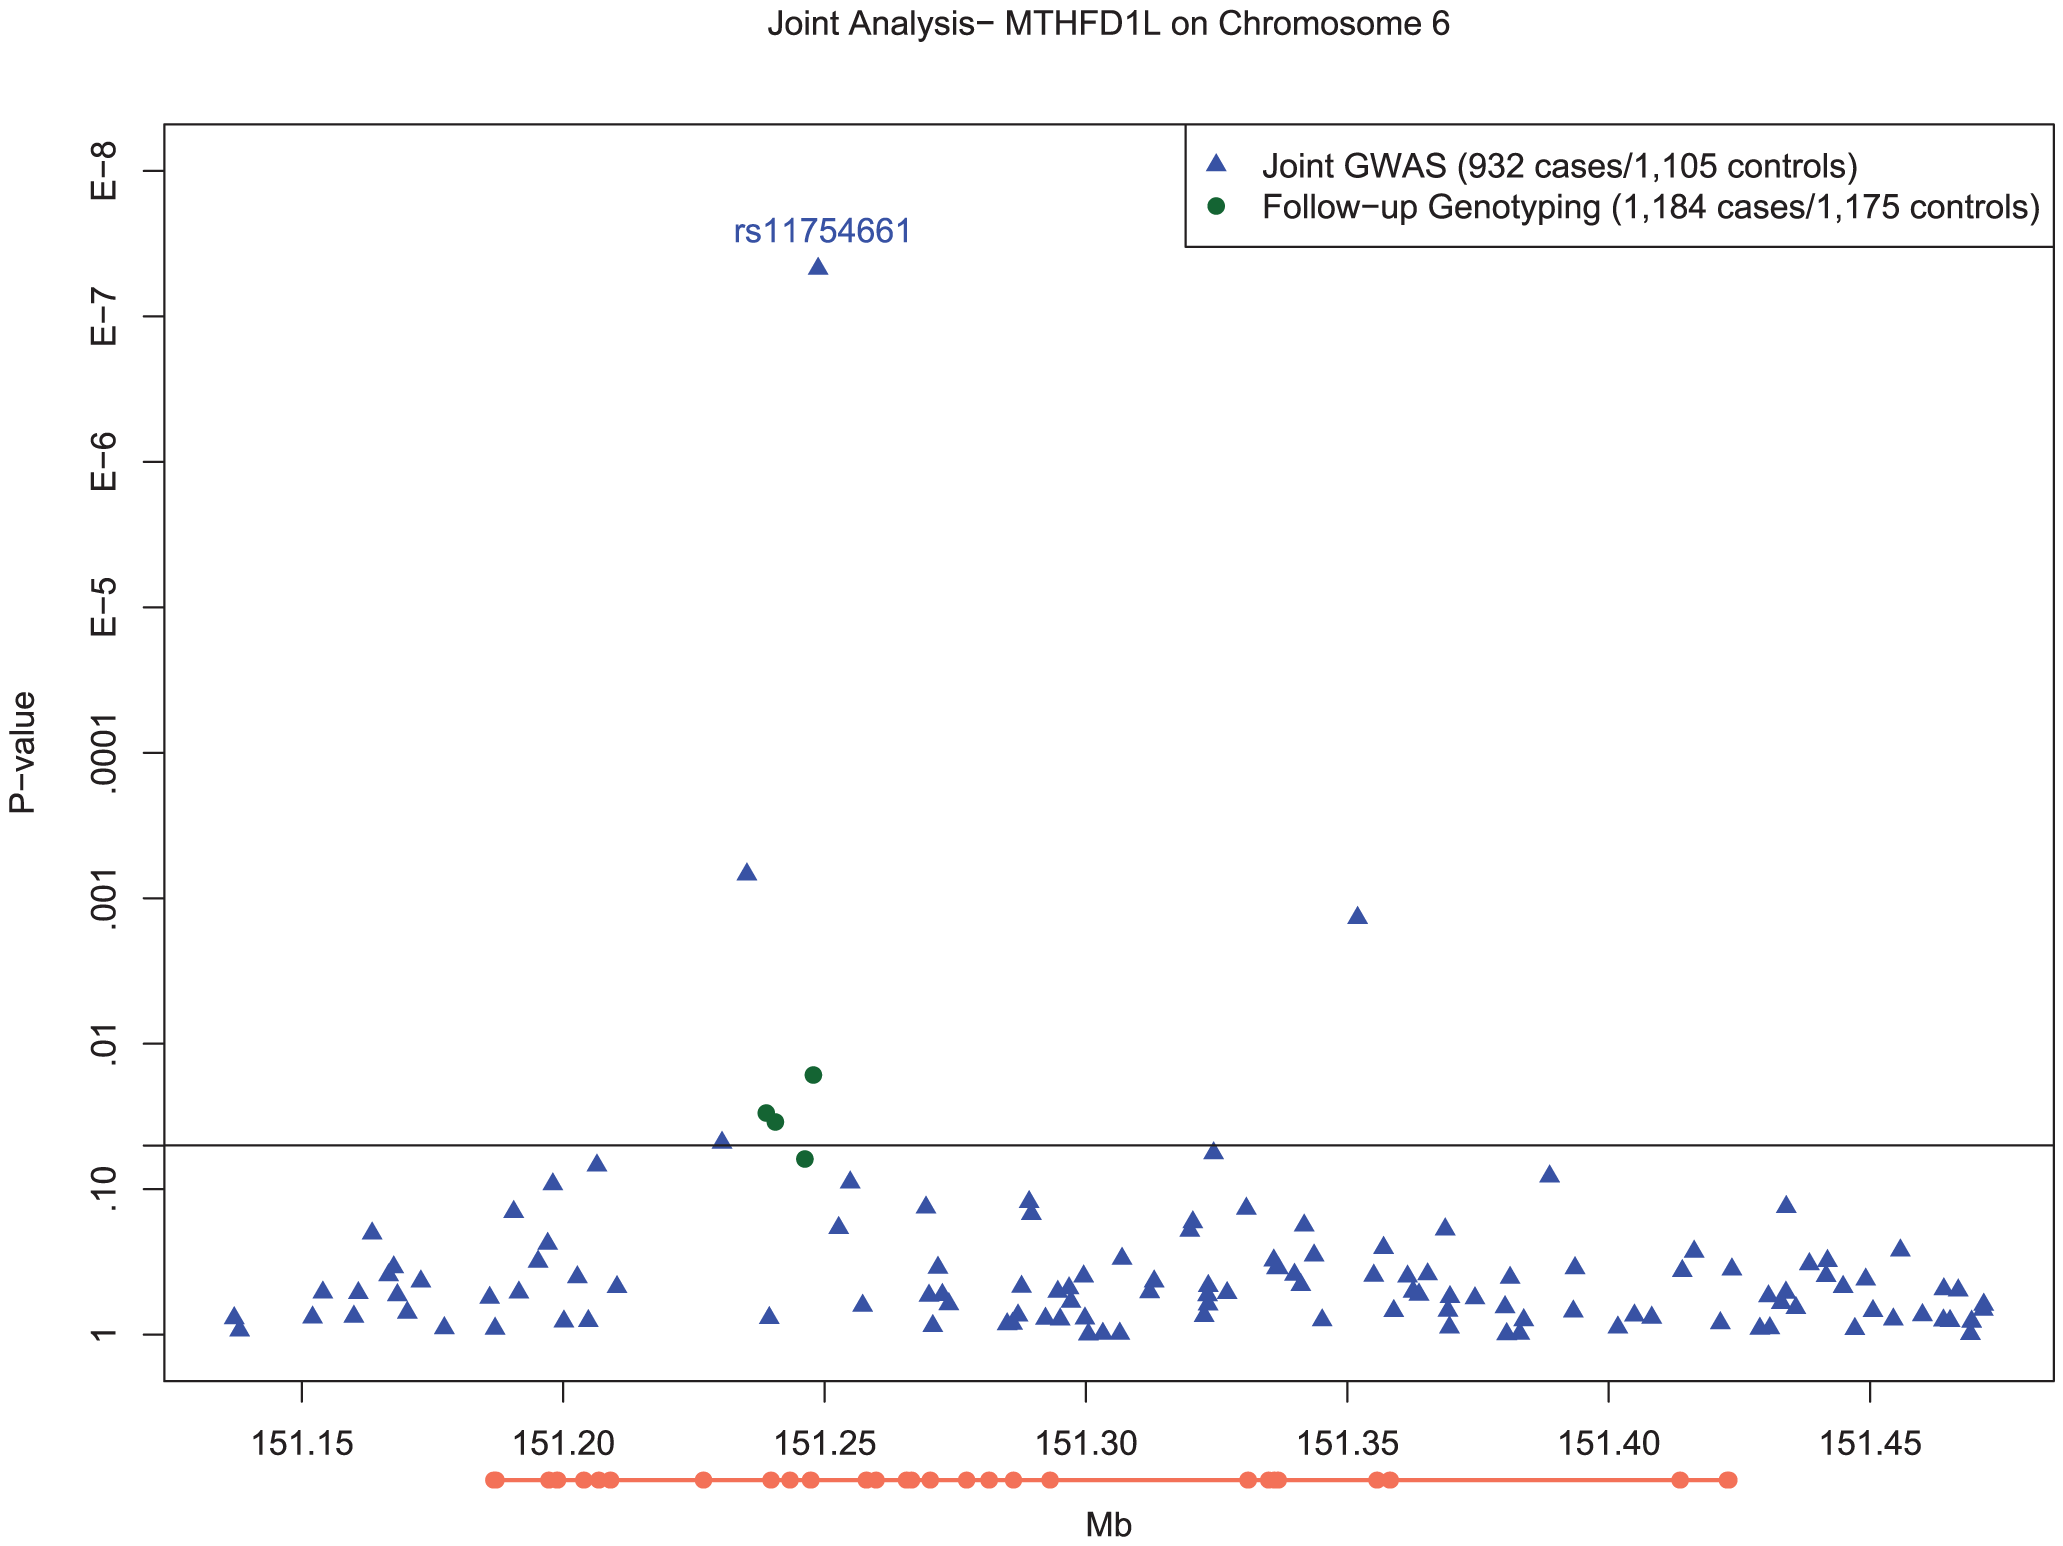 Manhattan plot of SNP associations in <i>MTHFD1L</i>, on chromosome 6 between 151.2 Mb and 151.3 Mb.